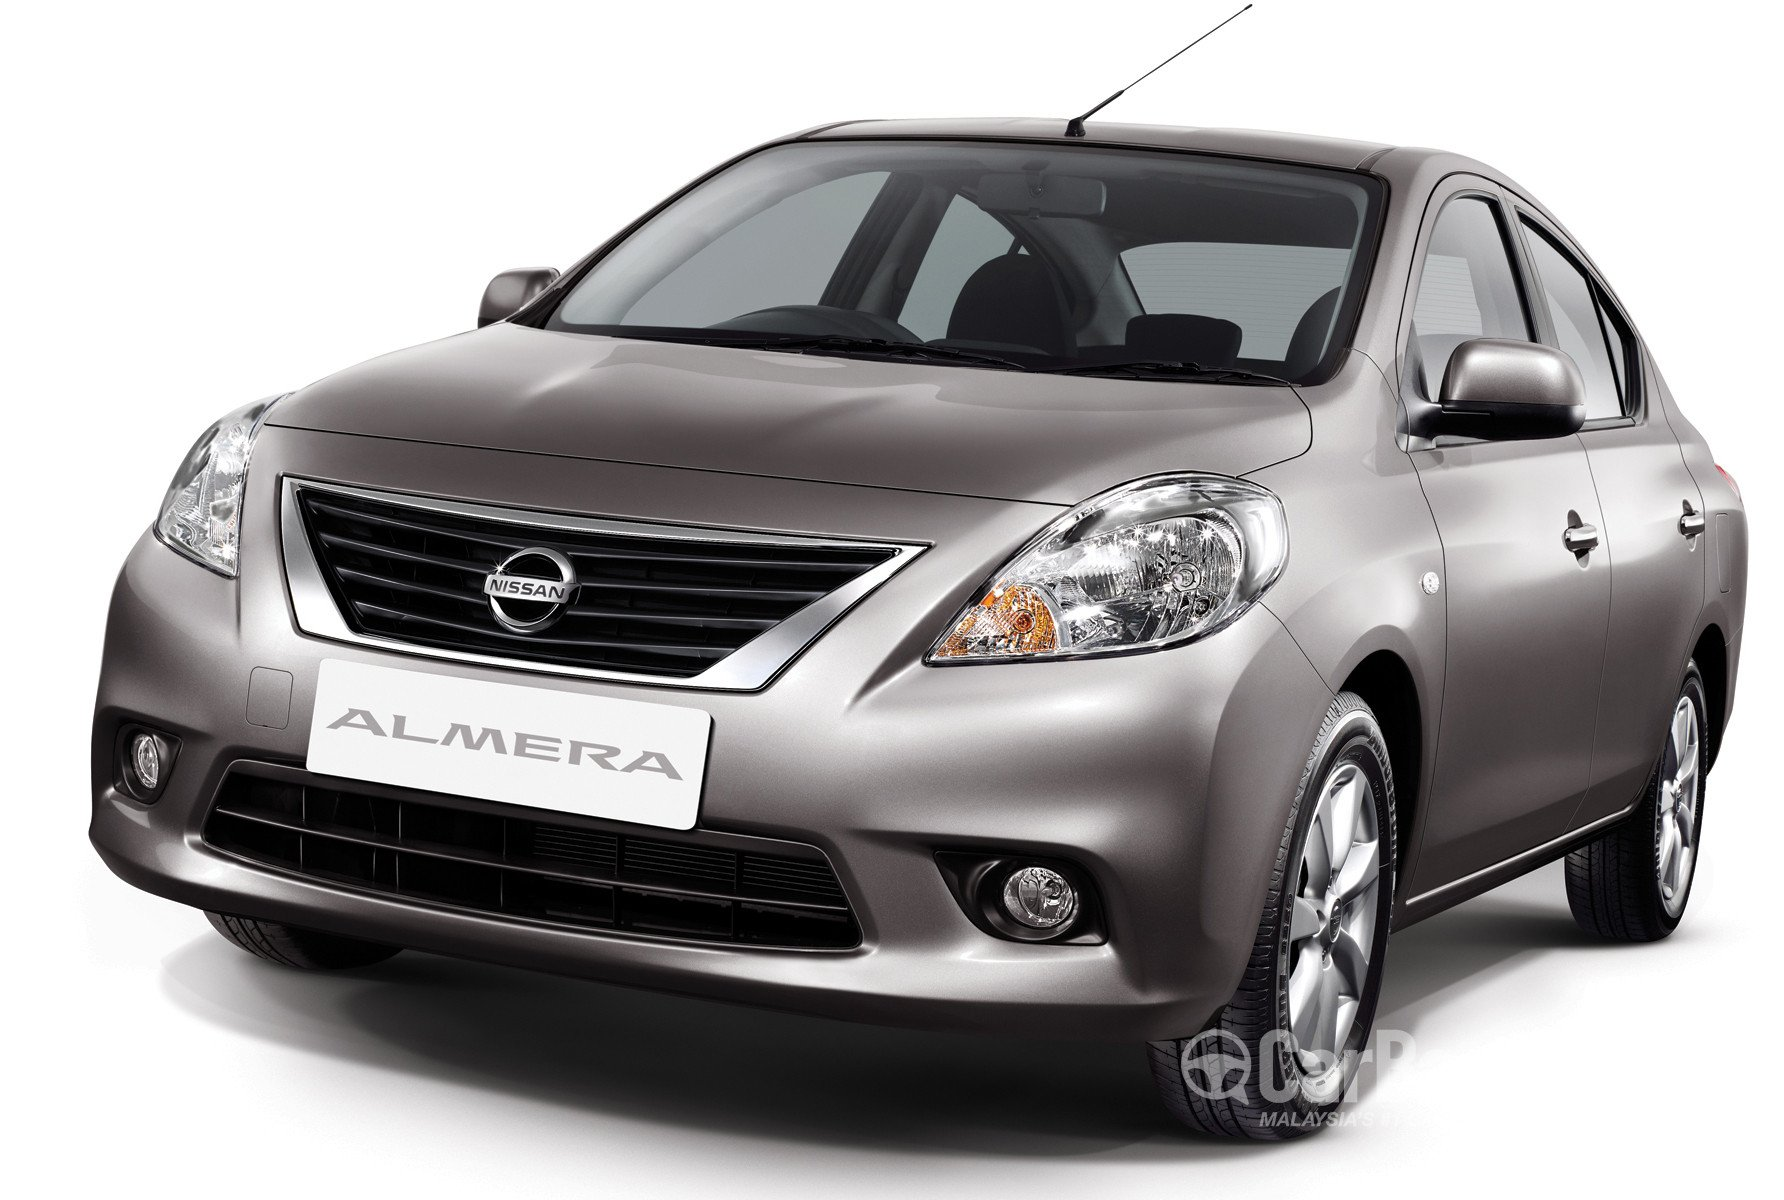 nissan almera n17 2012 exterior image 370 in malaysia reviews specs prices. Black Bedroom Furniture Sets. Home Design Ideas